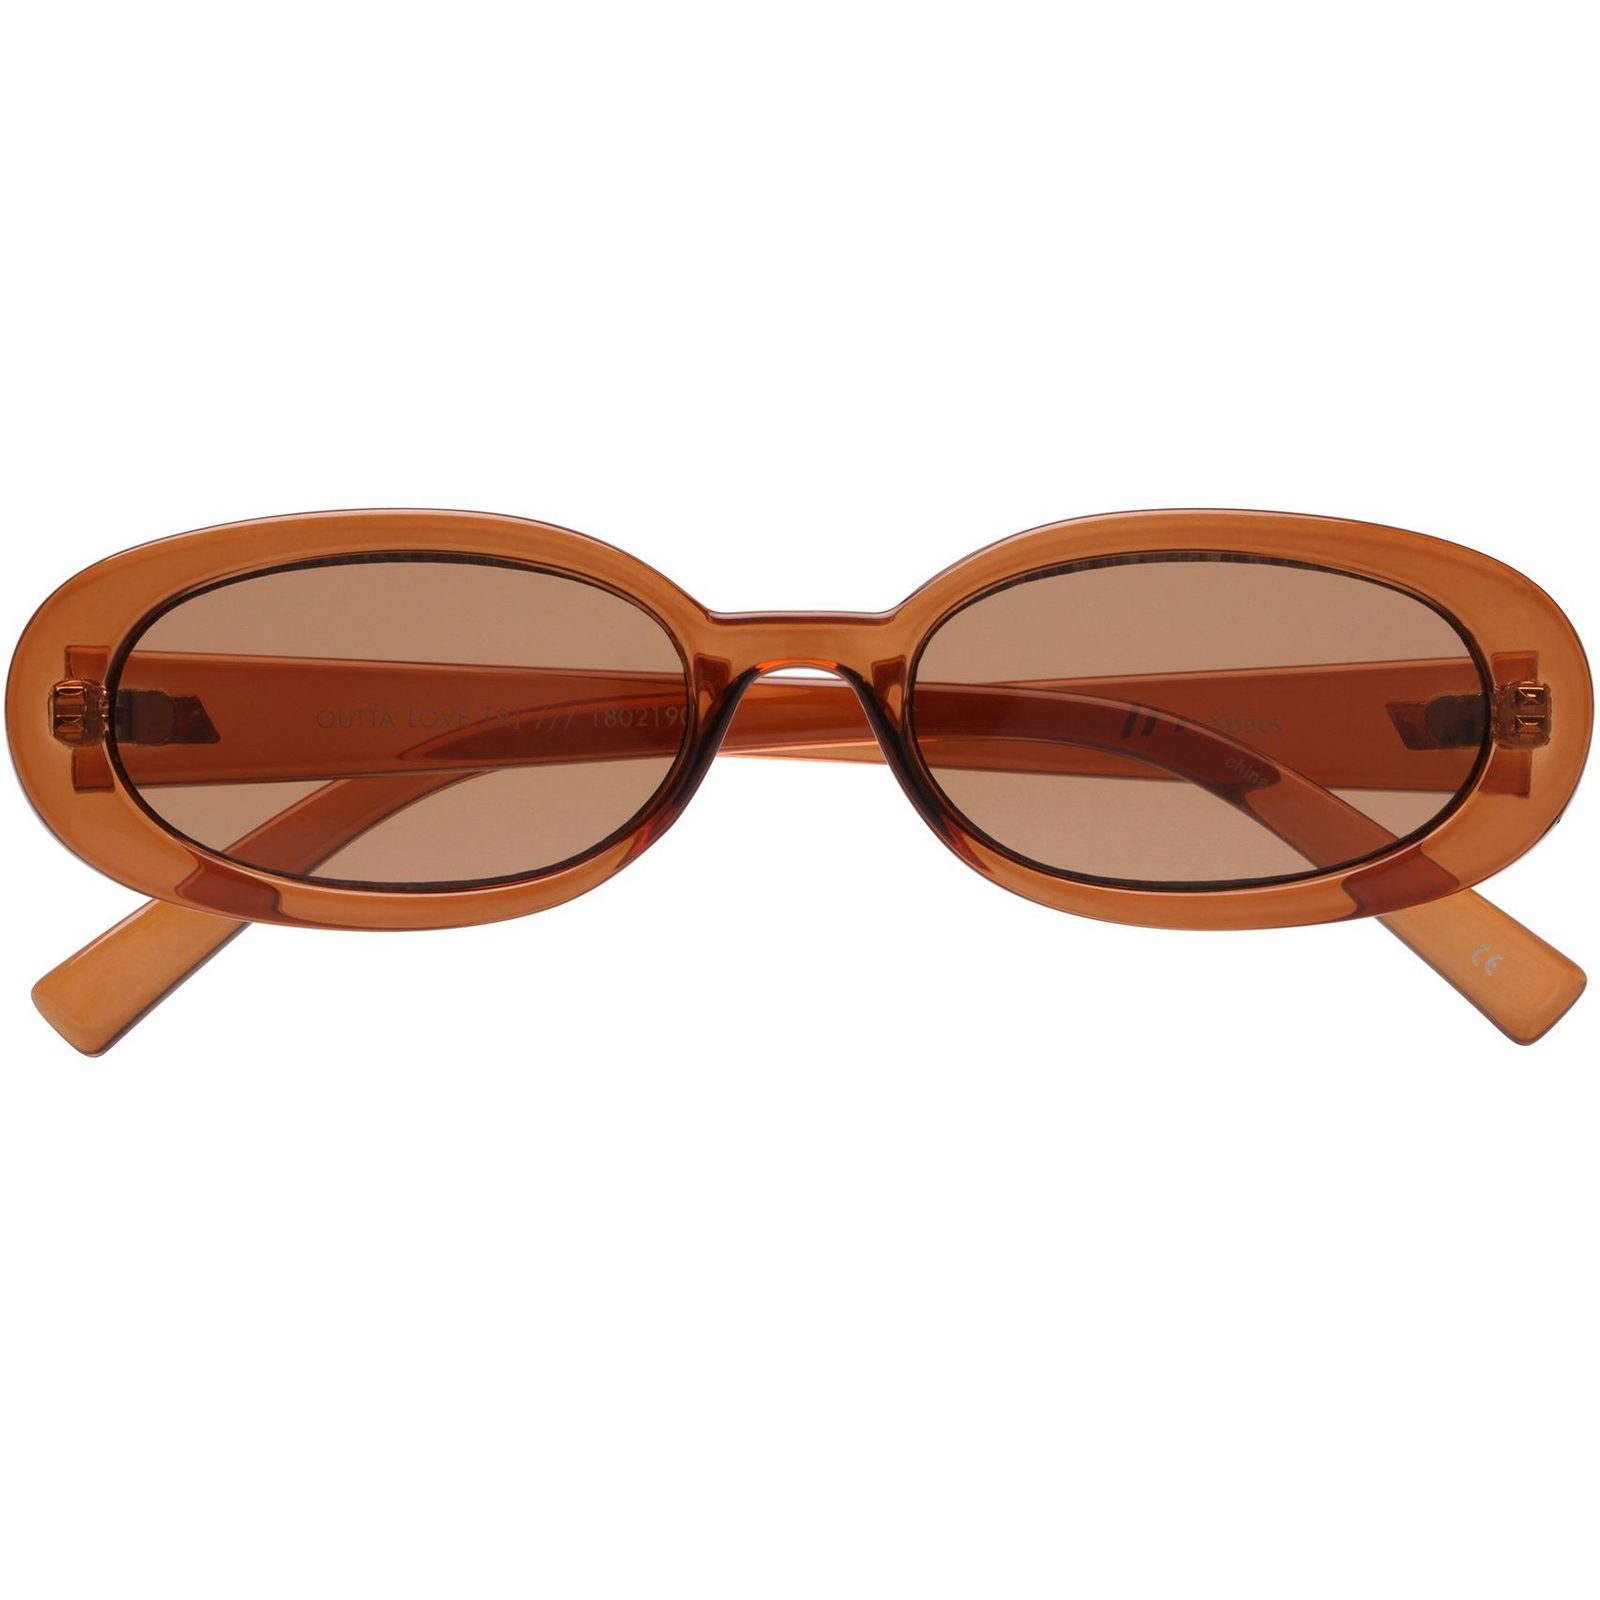 LeSpecs - Outta Love - Caramel / $59Offering a minimal update on a nineties look, this oval silhouette features a modern flat profile and iconic Le Specs shape.